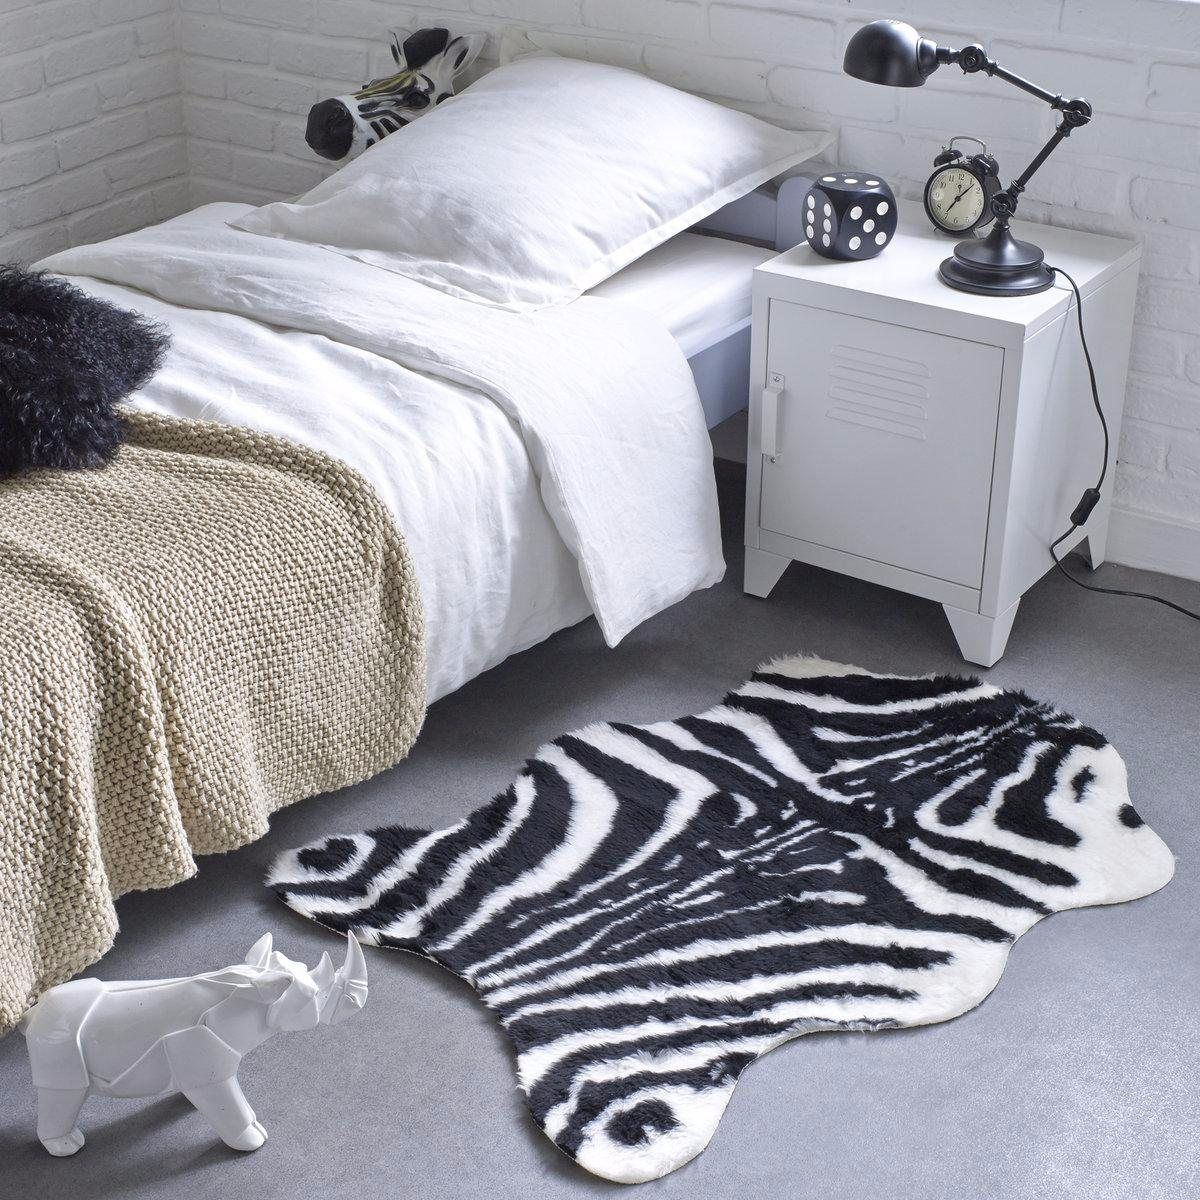 tapis effet peau de b te la redoute pickture. Black Bedroom Furniture Sets. Home Design Ideas